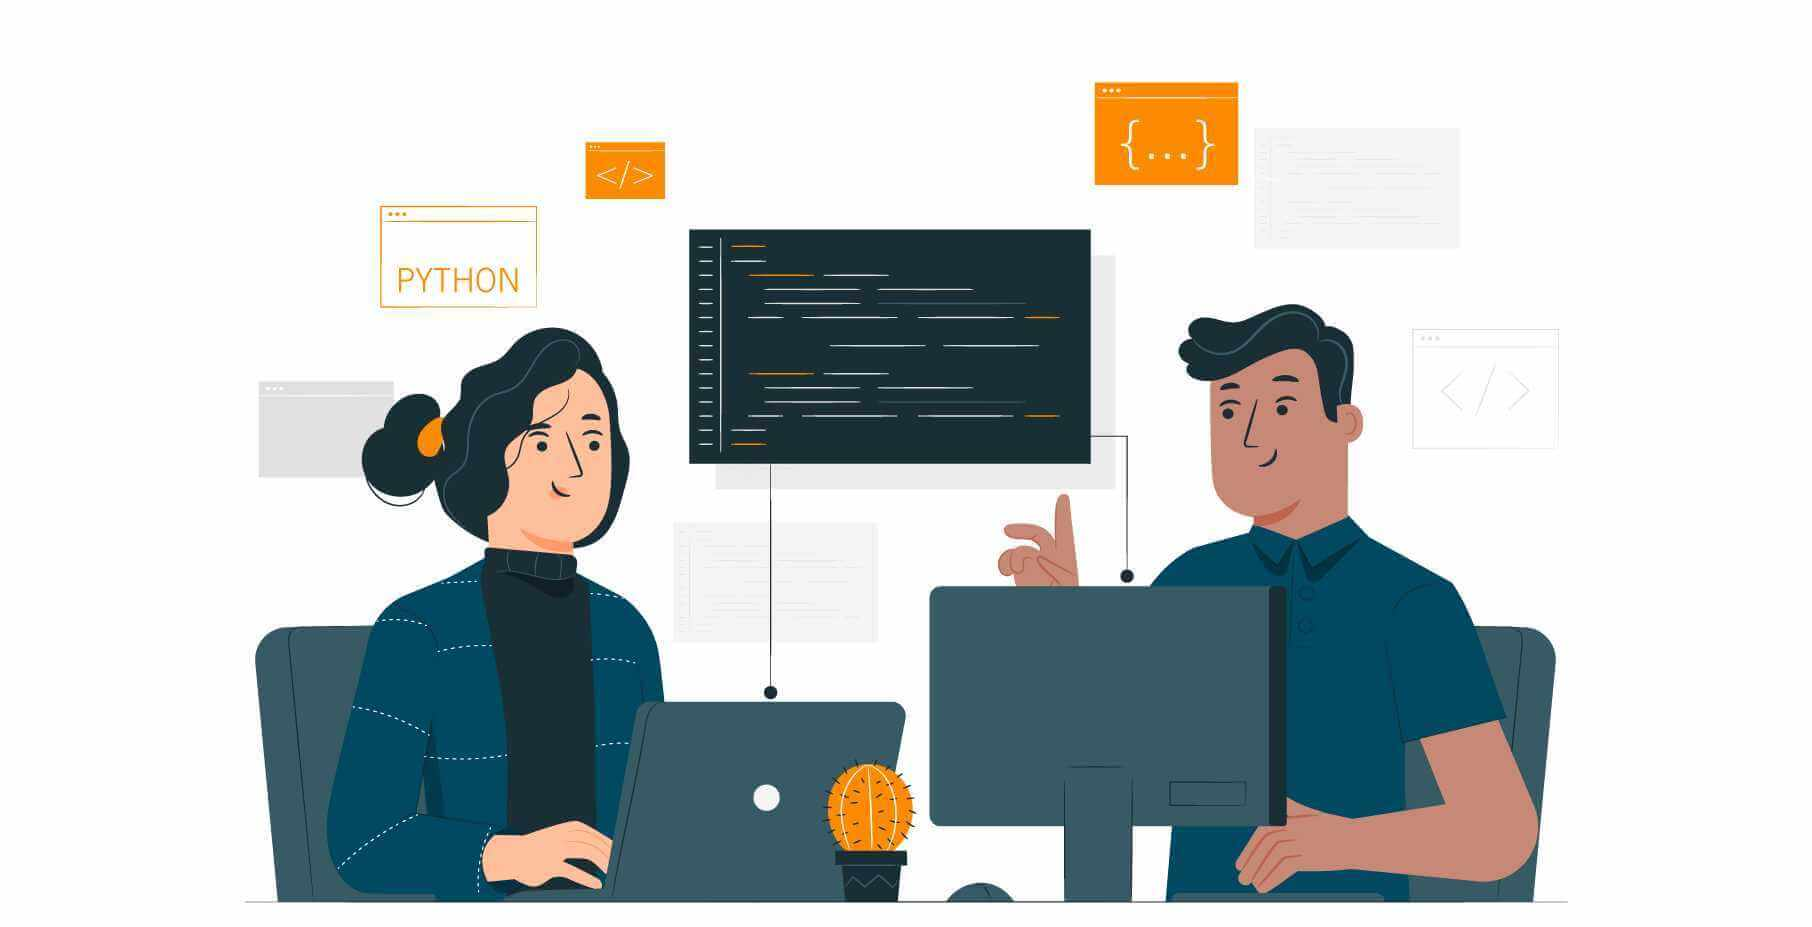 expert python online tutor helping a student with python coding assignment and homework